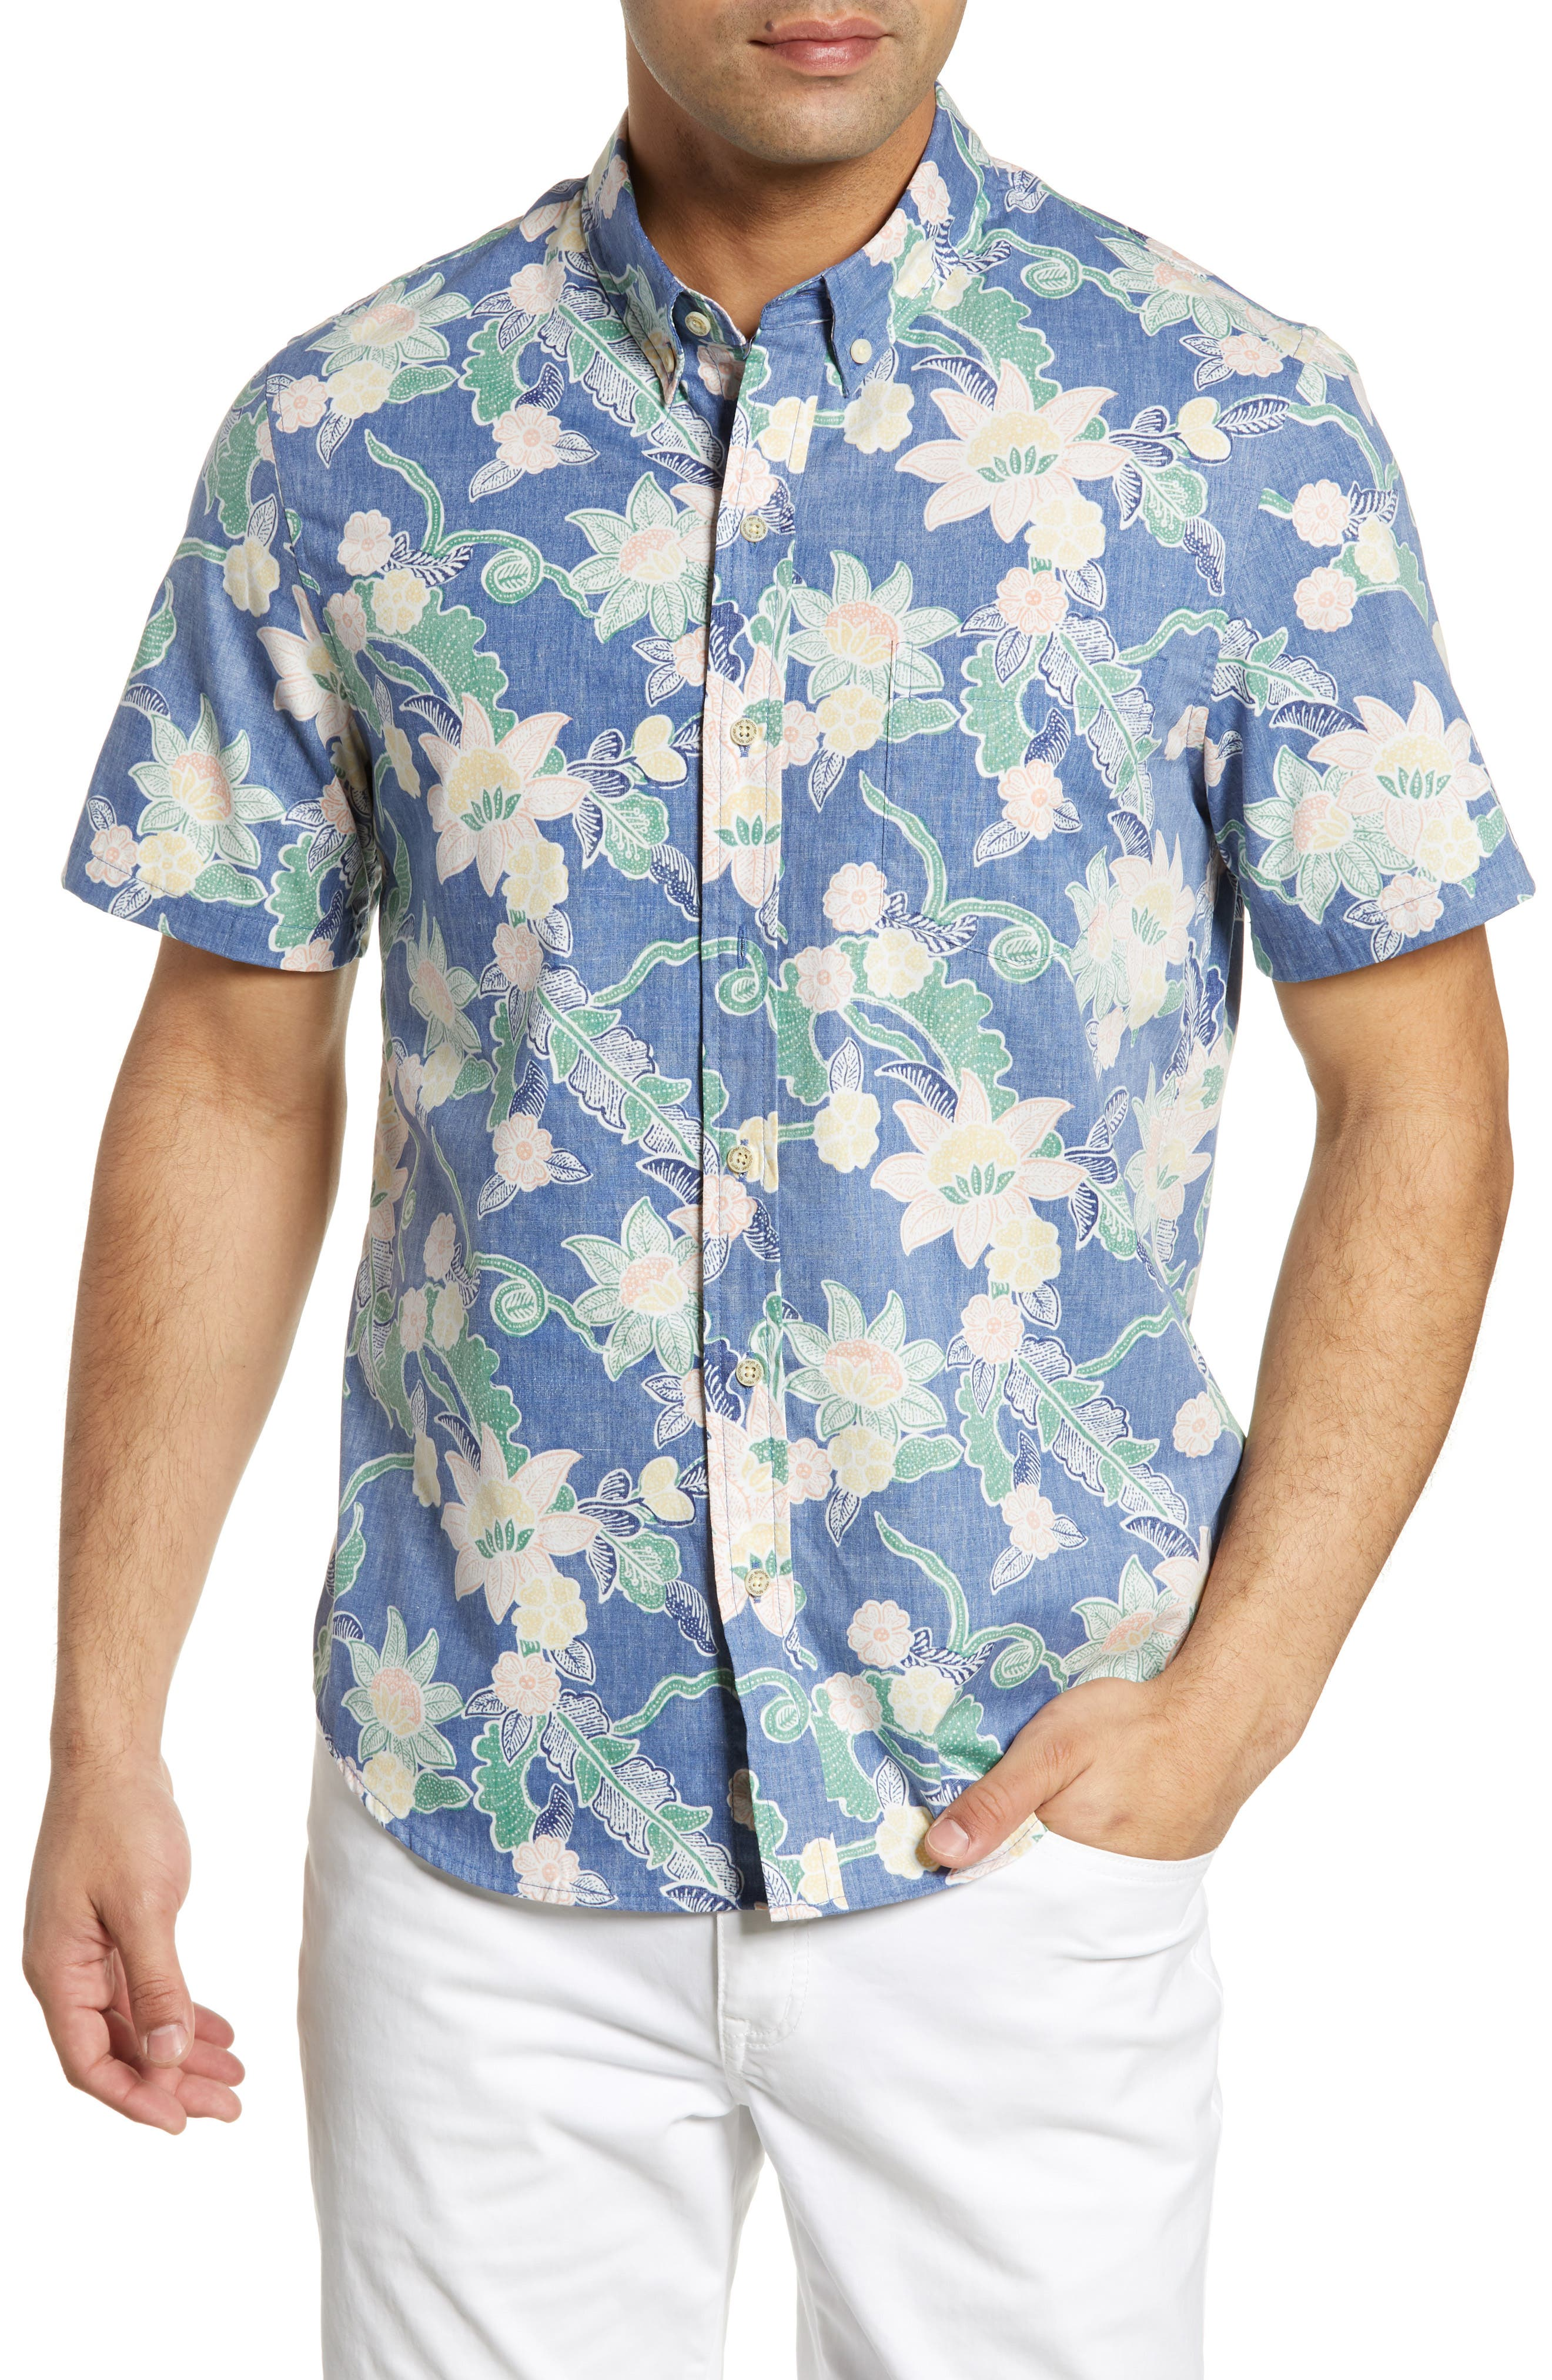 Reyn Spooner Mahaloha Patterned Sport Shirt, Blue